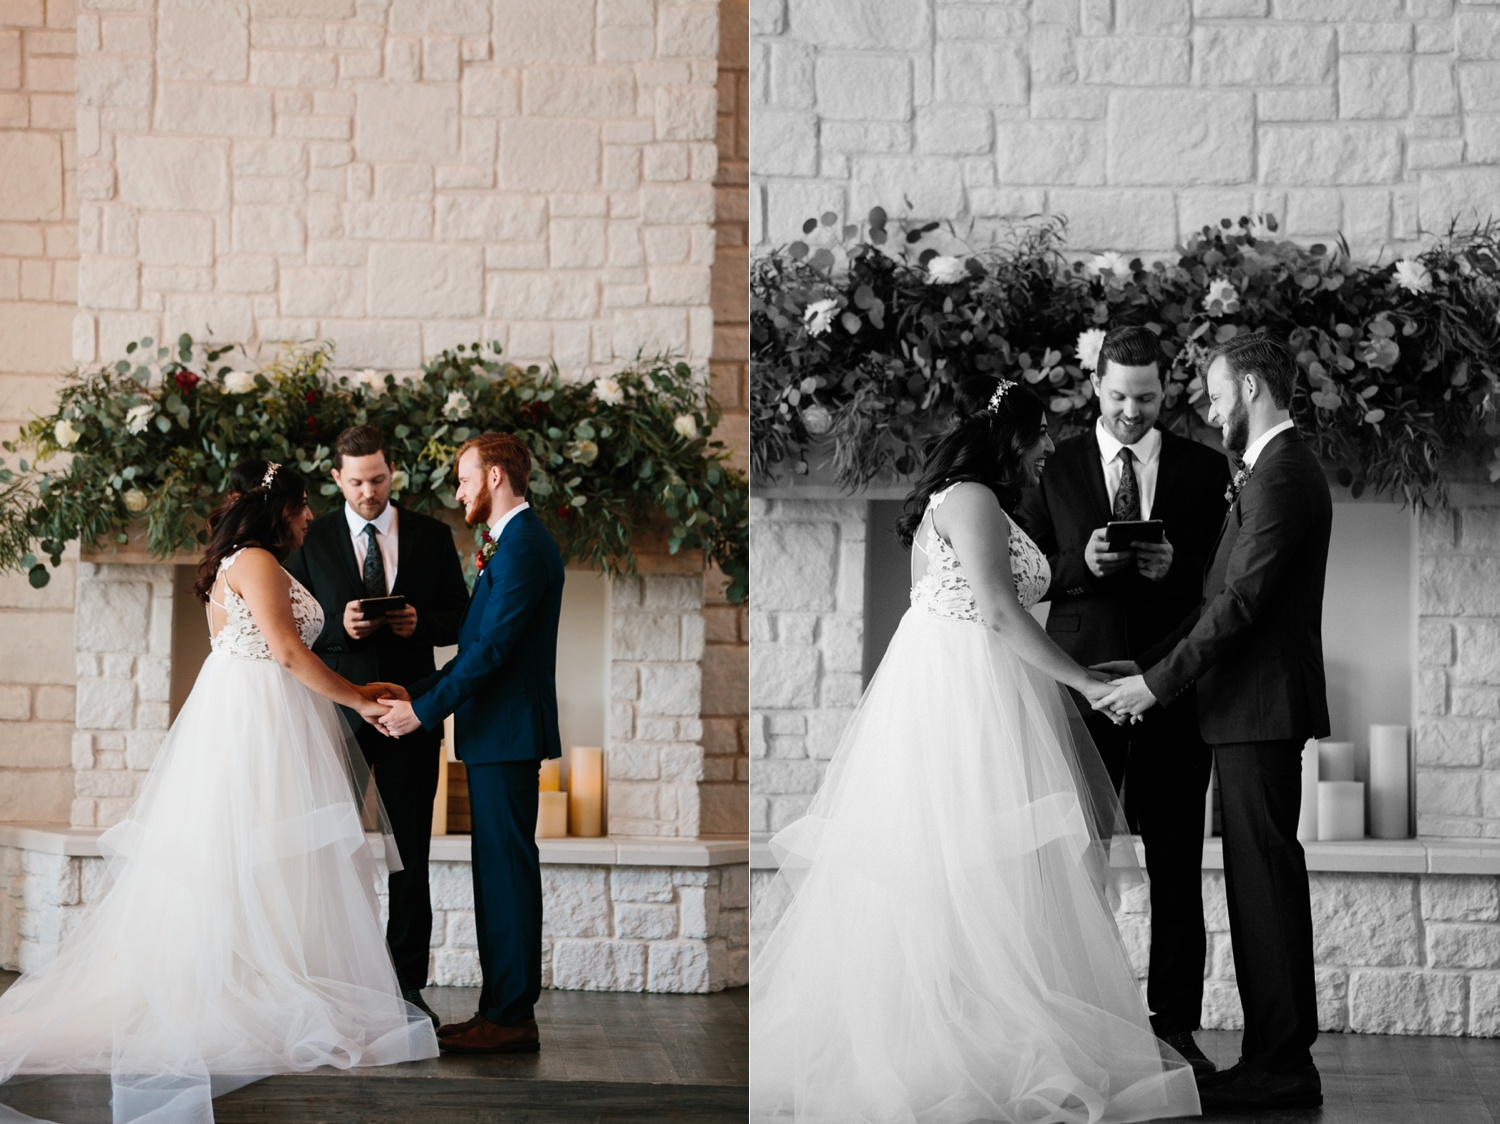 Grant + Lysette | a vibrant, deep burgundy and navy, and mixed metals wedding at Hidden Pines Chapel by North Texas Wedding Photographer Rachel Meagan Photography 089